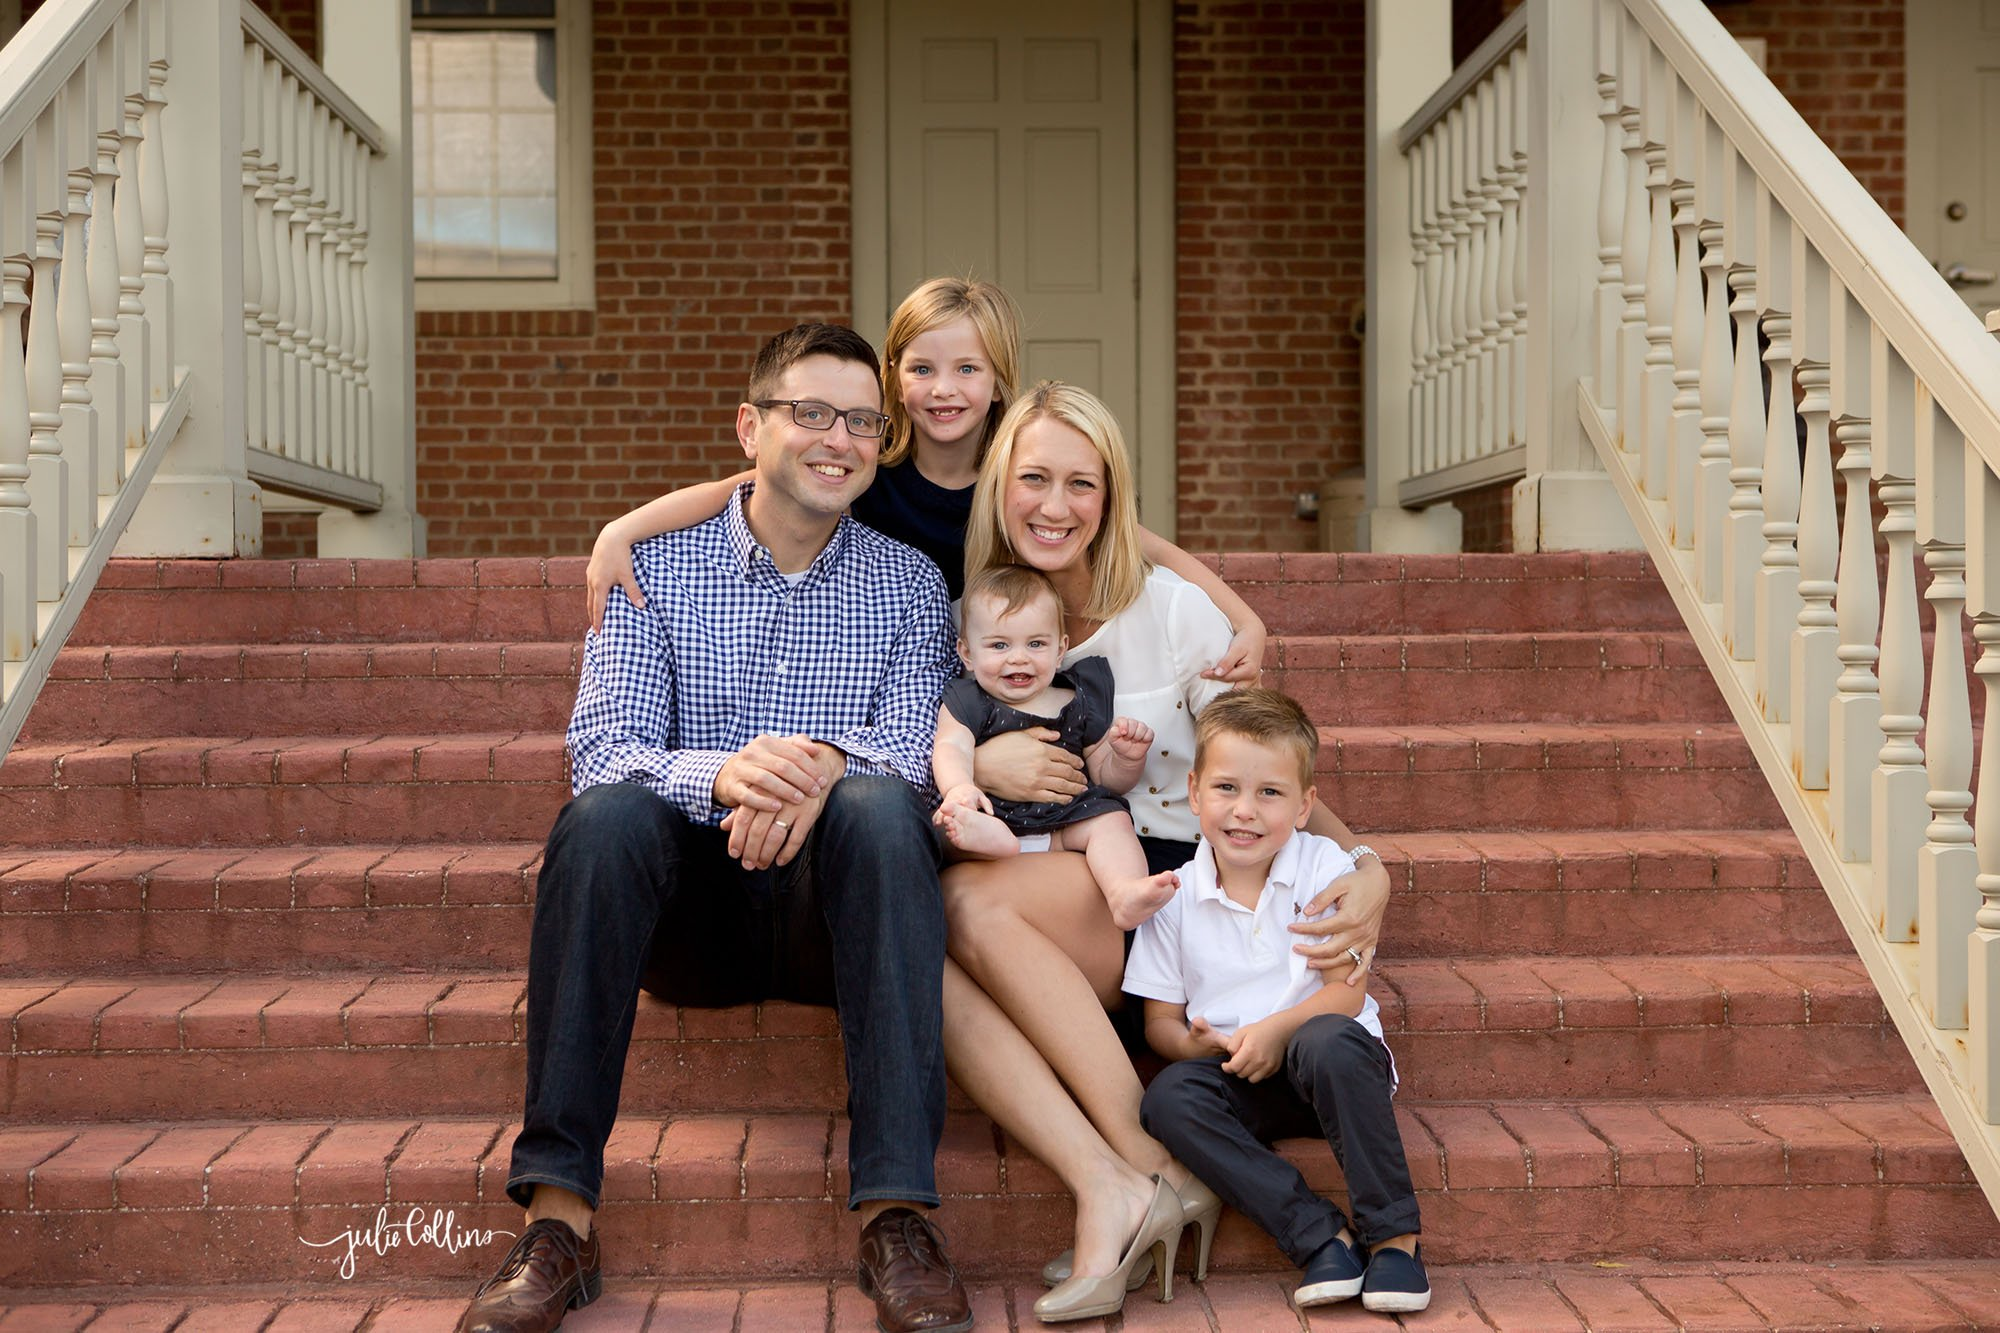 Family of five sitting on brick steps of urban area in downtown Delafield posing for a family portrait session